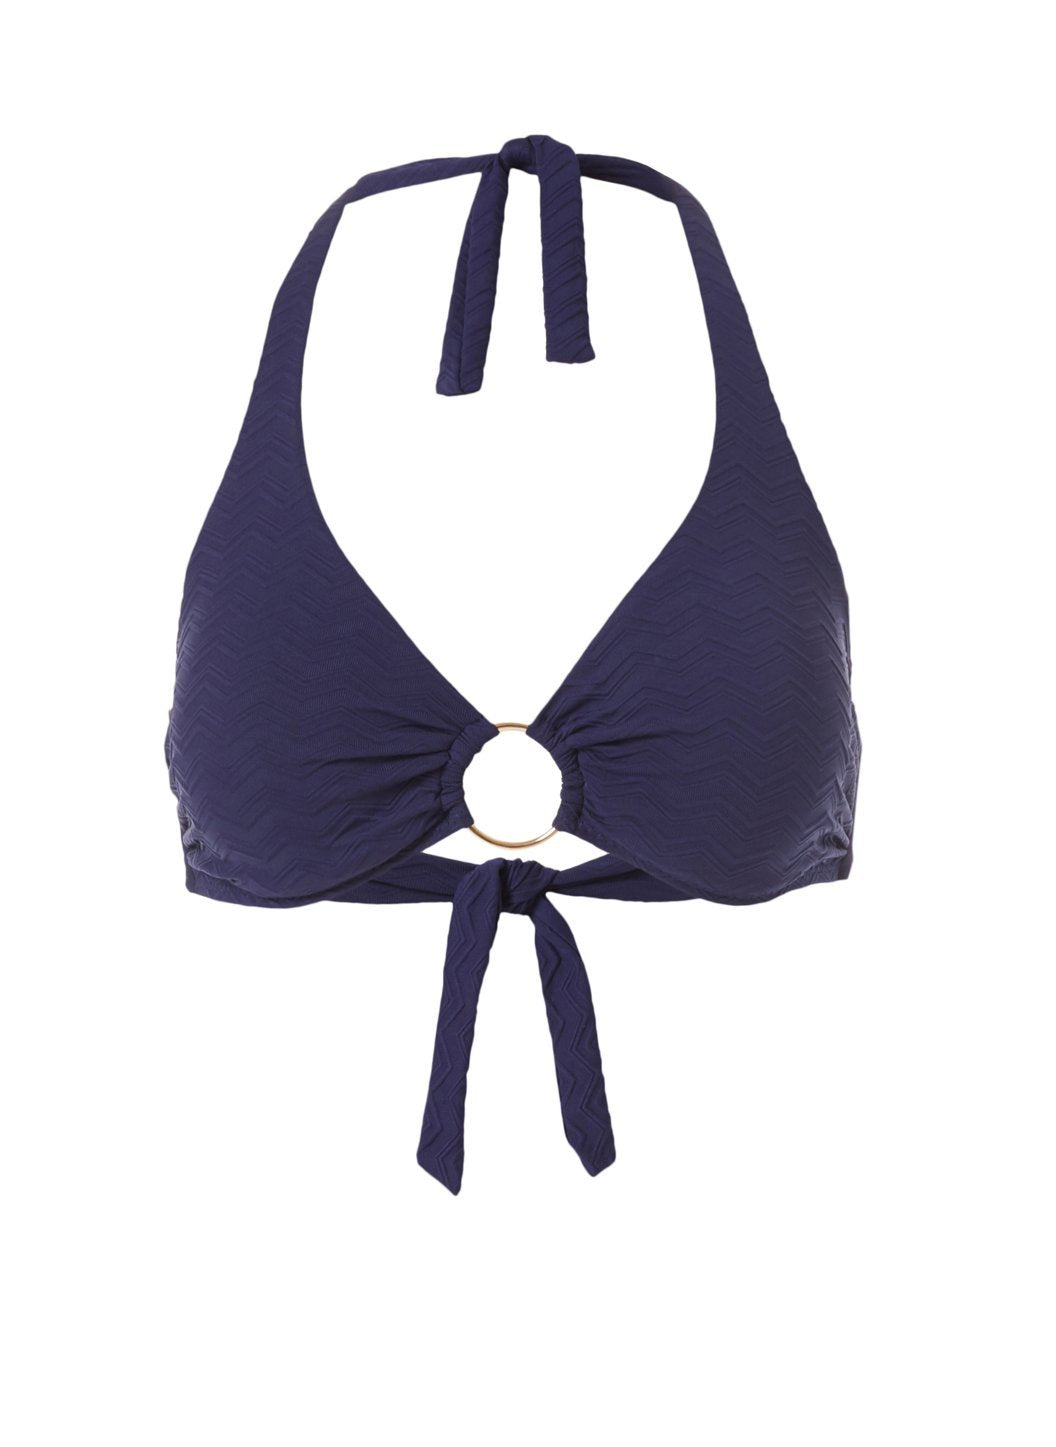 Brussels Navy Zigzag Halterneck Ring Supportive Bikini Top